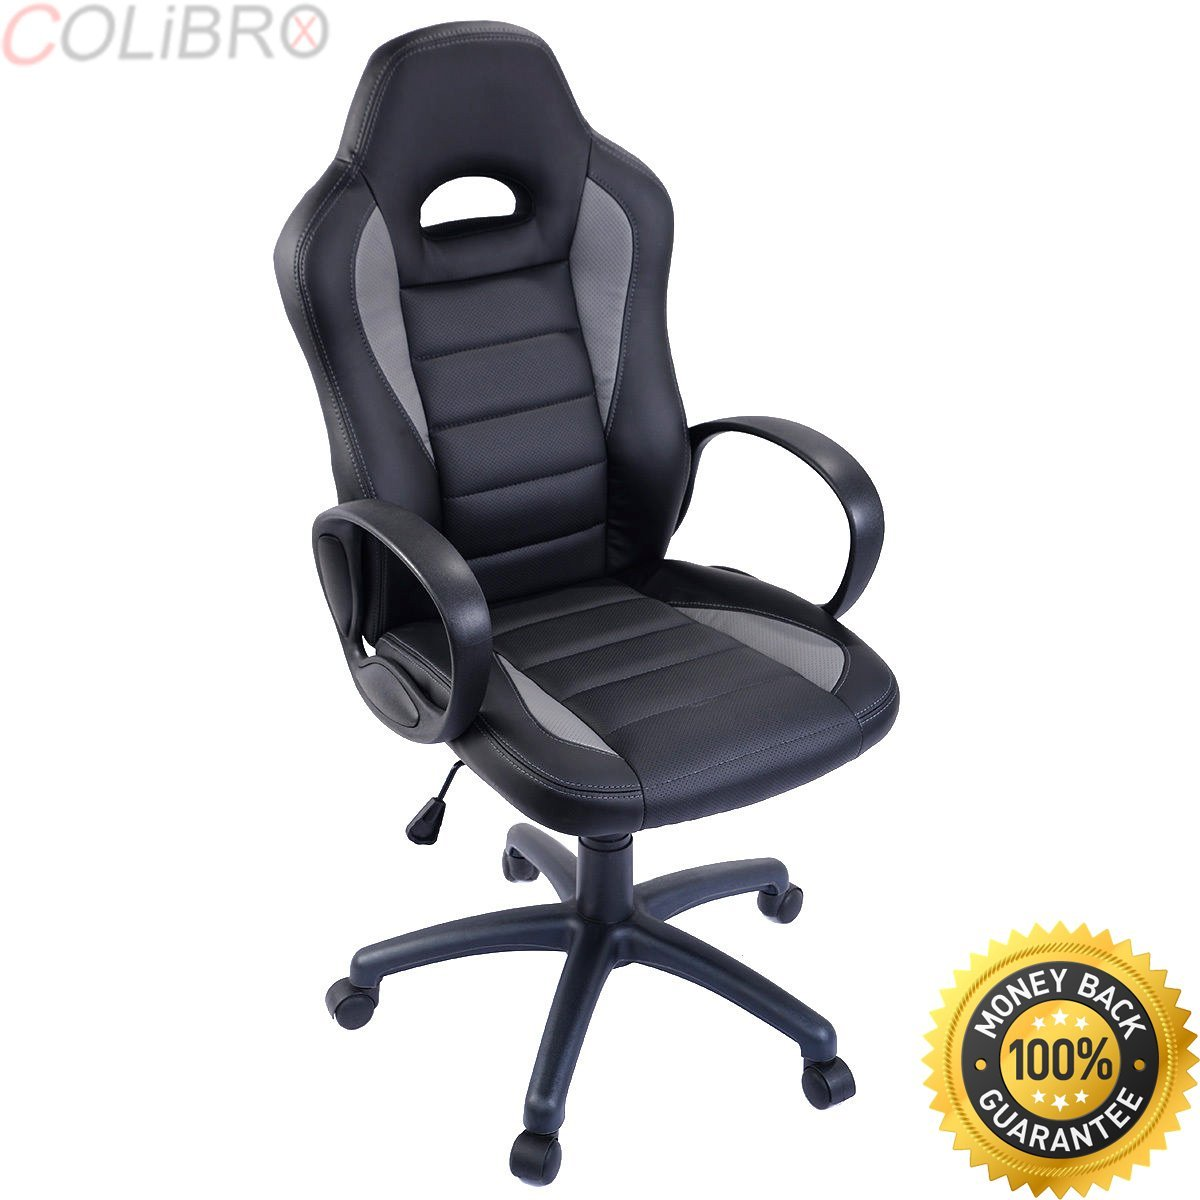 COLIBROX--New PU Leather High Back Executive Race Car Style Bucket Seat Office Desk Chair. new high back racing car style bucket seat office desk chair gaming chair. race car style office chair.